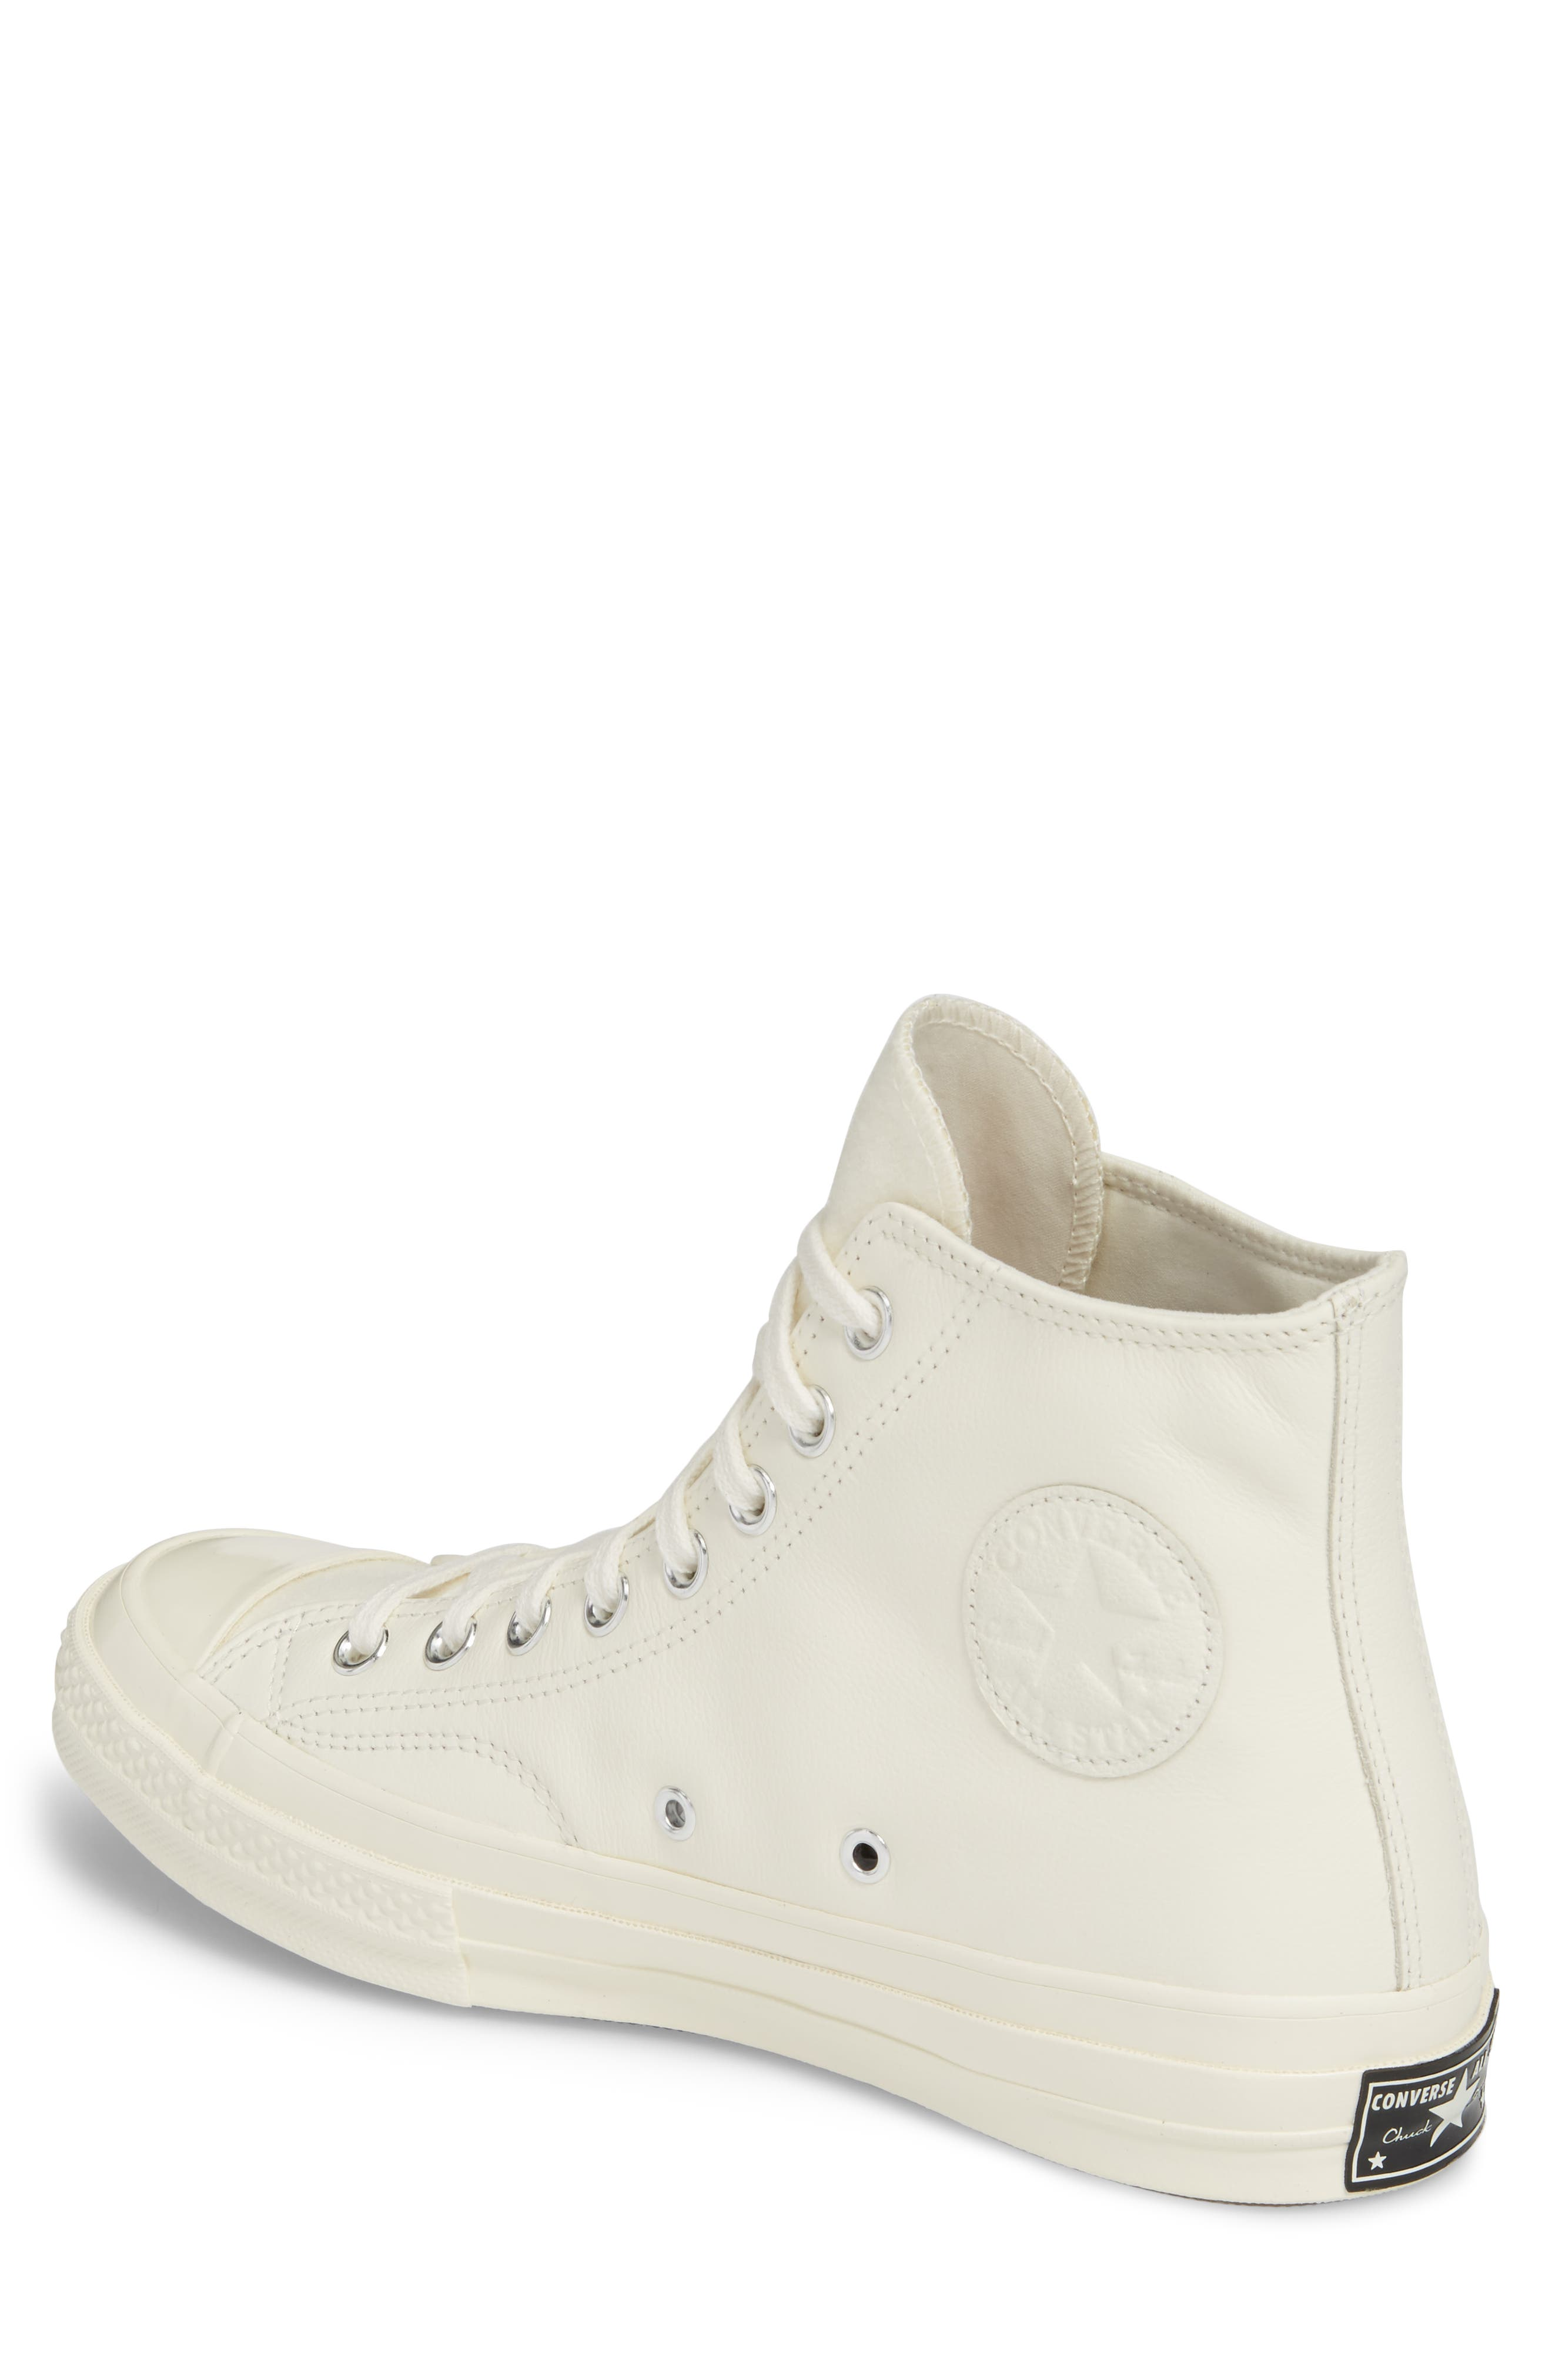 CONVERSE,                             Chuck Taylor<sup>®</sup> All Star<sup>®</sup> Wordmark High Top Sneaker,                             Alternate thumbnail 2, color,                             281